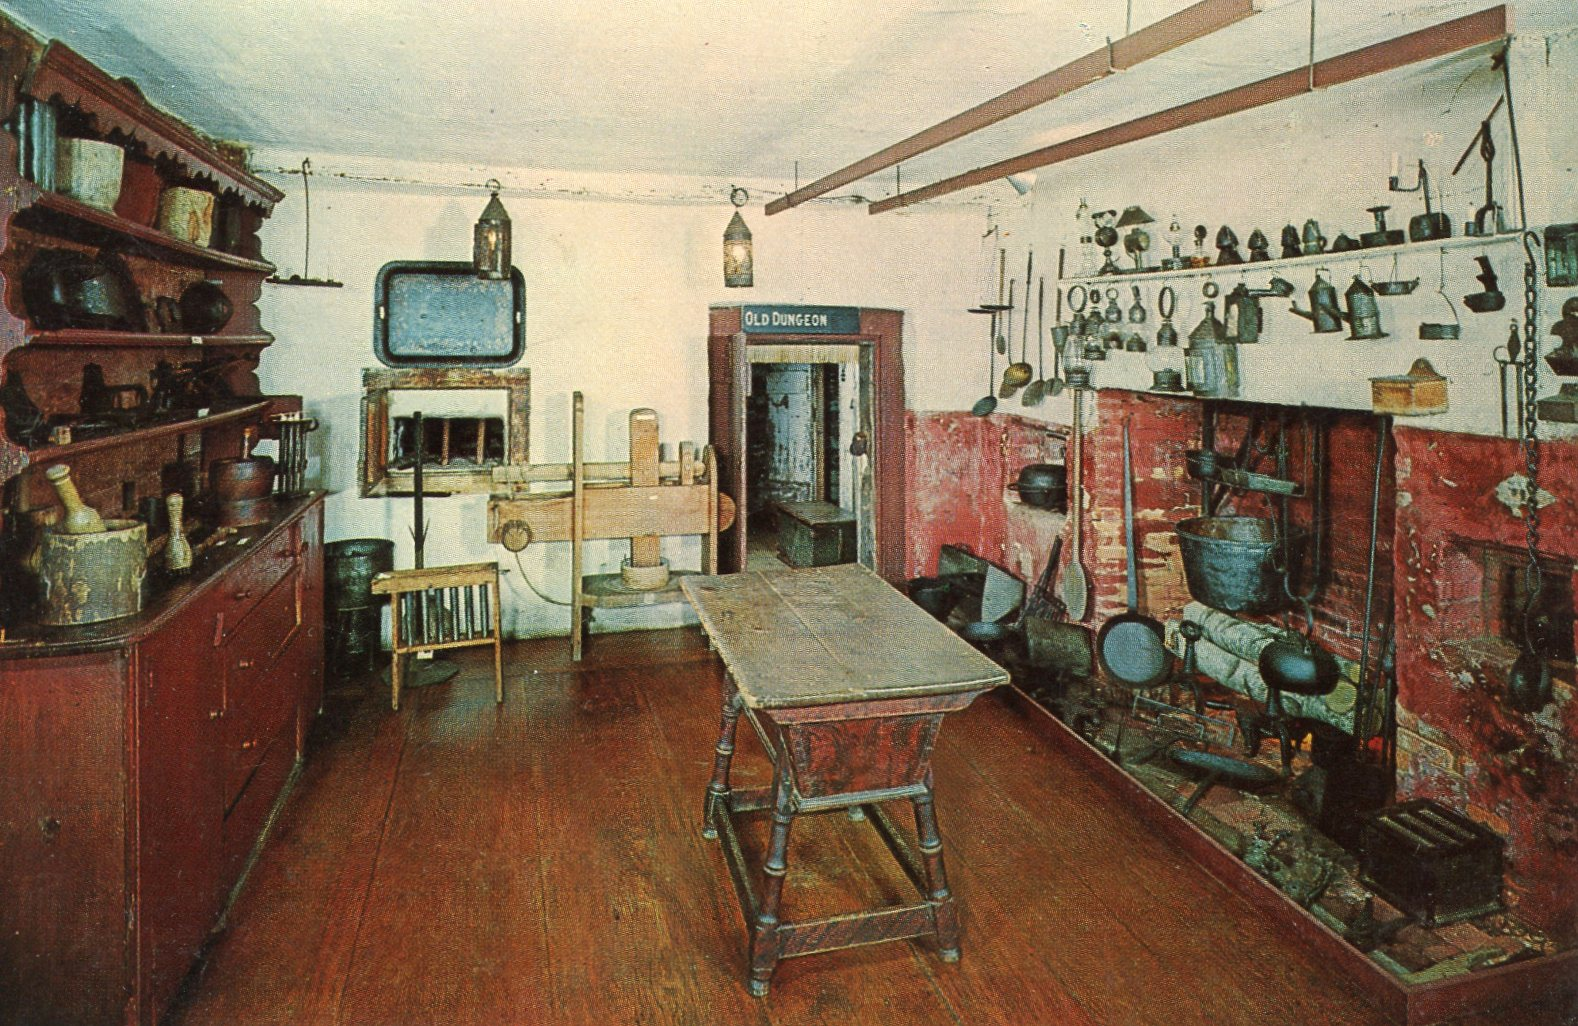 The cluttered kitchen used by the gaol's warden and family.